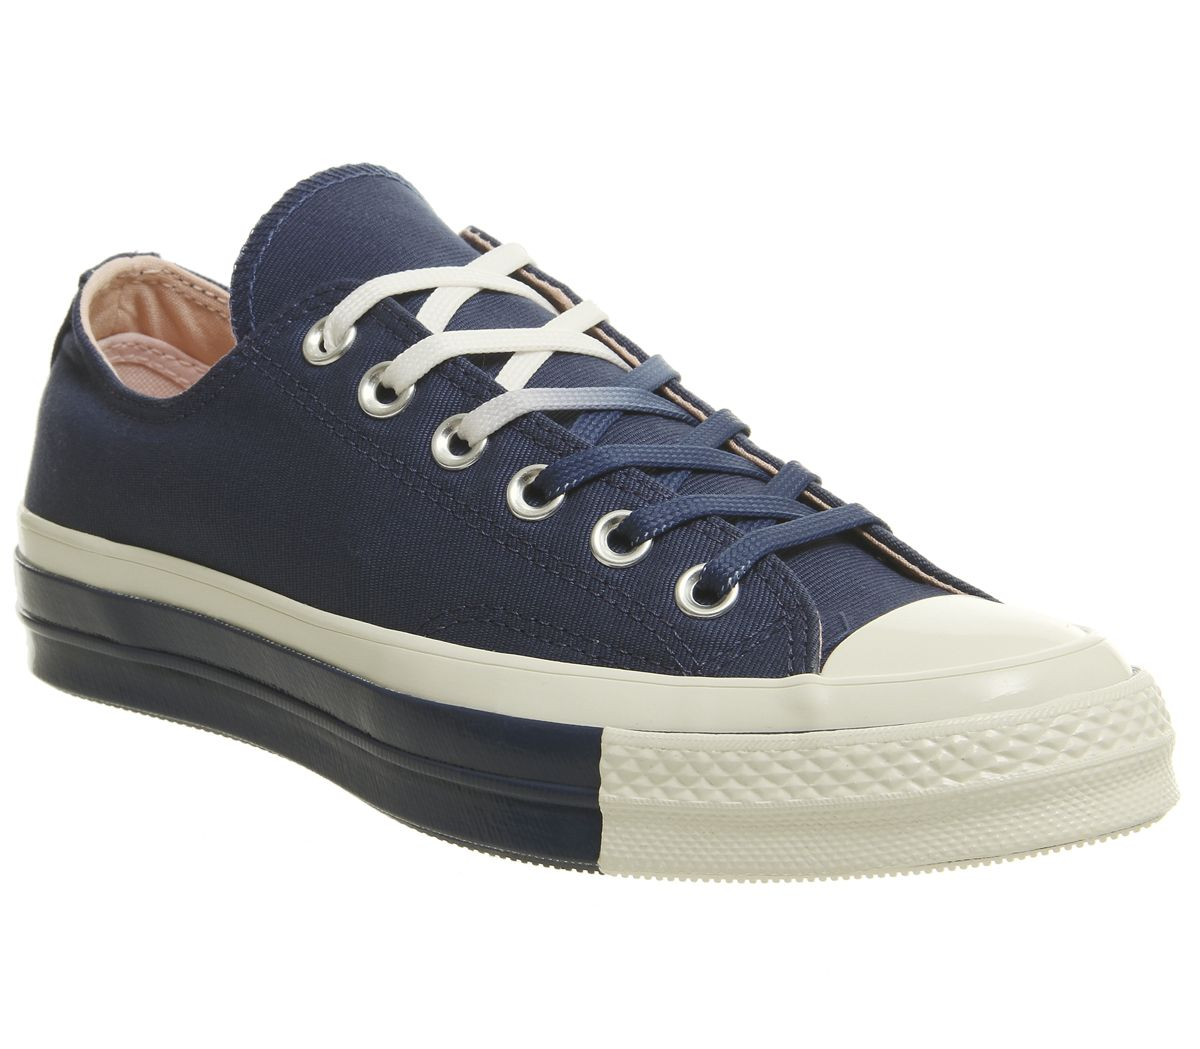 da3f5ff655d8e4 Converse All Star Ox 70s Trainers Mason Blue Egret Split - His trainers